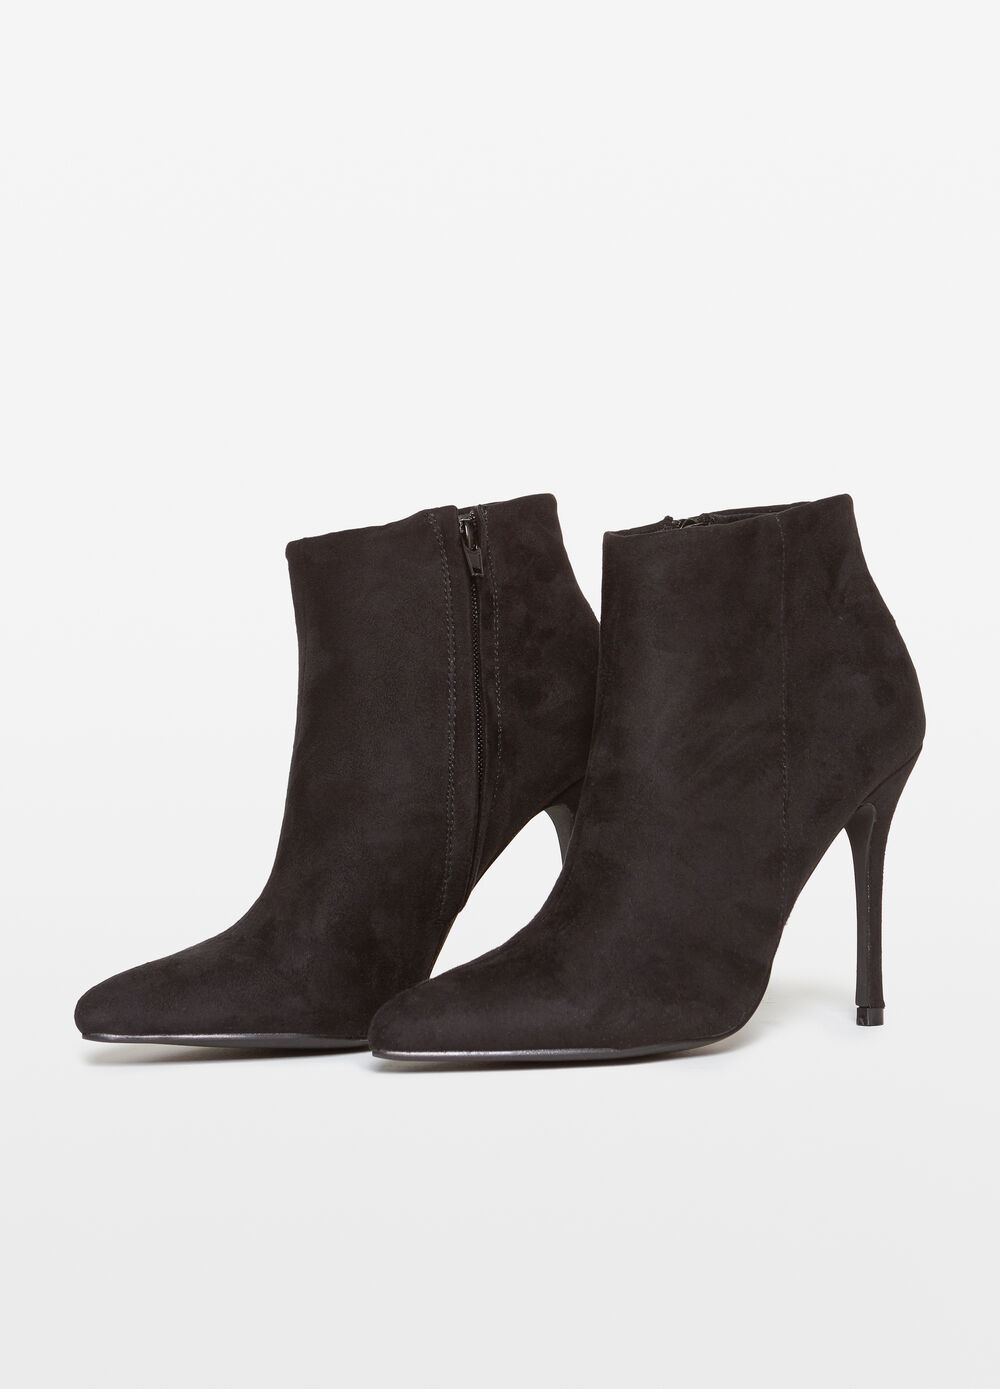 Ankle boots with stiletto heel and zip